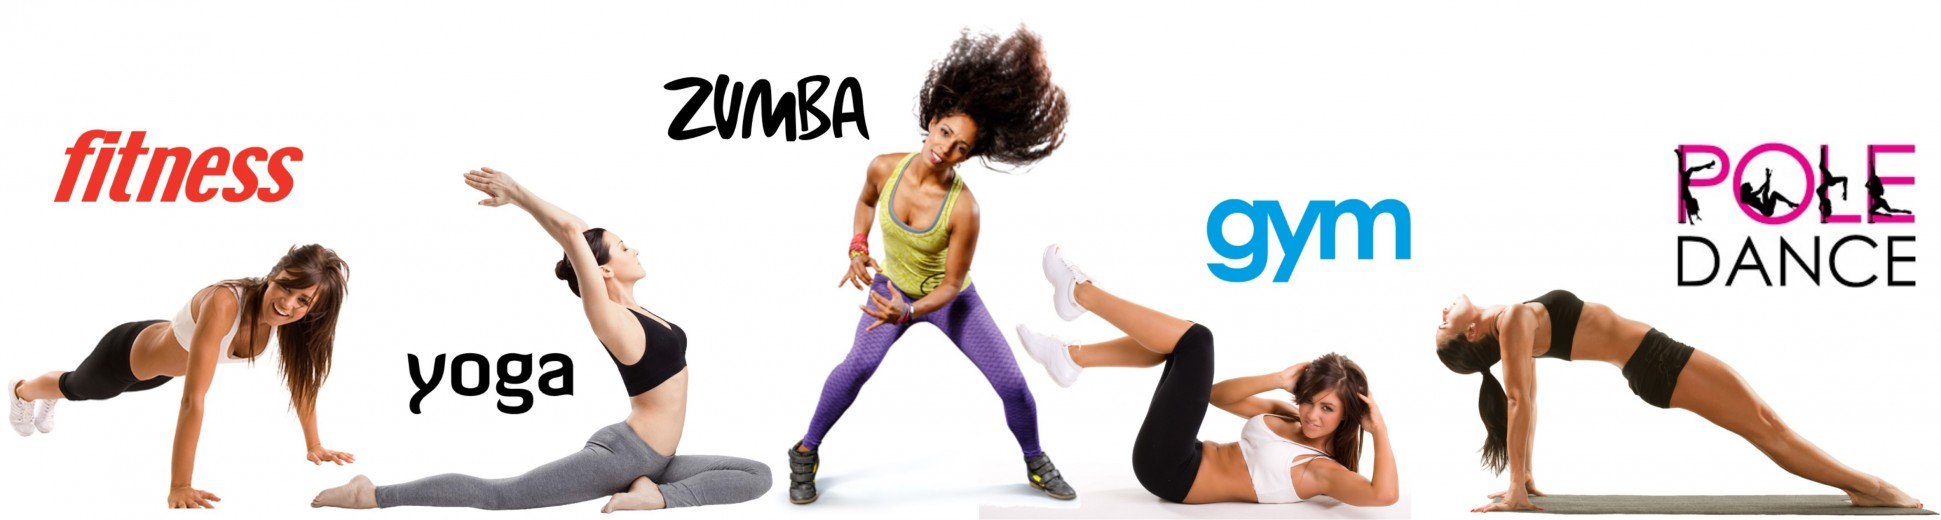 FITNESS, GYM, ACTIV WEAR, ZUMBA, YOGA,..